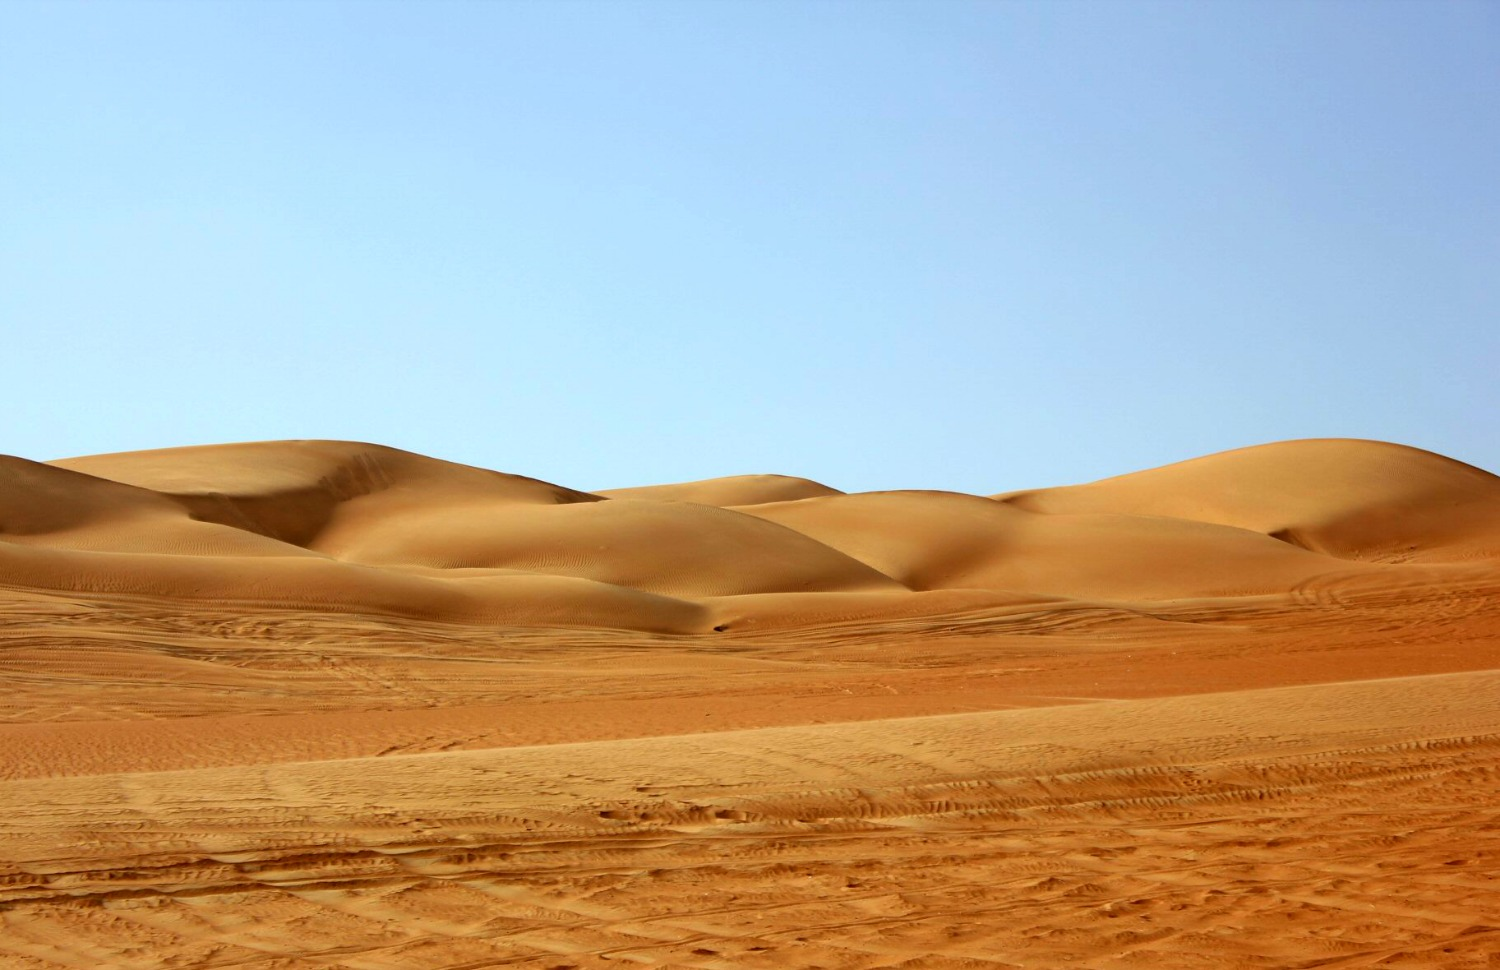 Burned orange sand dunes with tyre tracks in the sand in front at Wahiba Sands in Oman - my nine reasons to visit Oman with kids